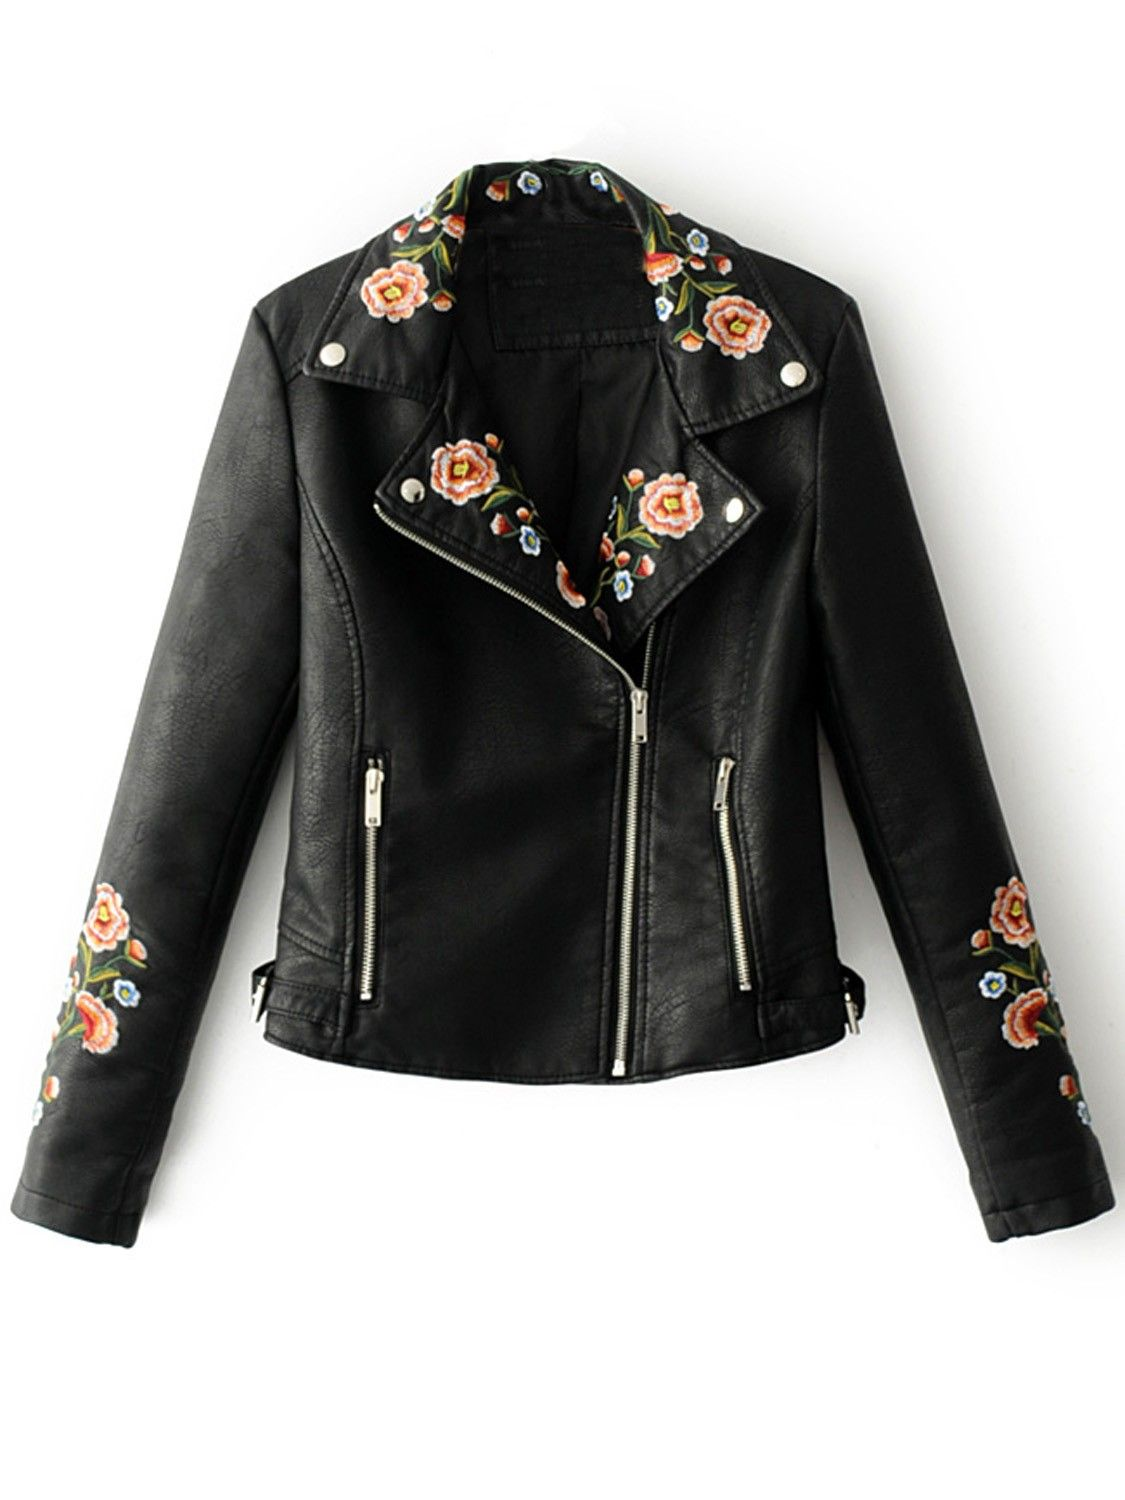 Lapel Embroidery Floral Detail Leather Look Biker Jacket